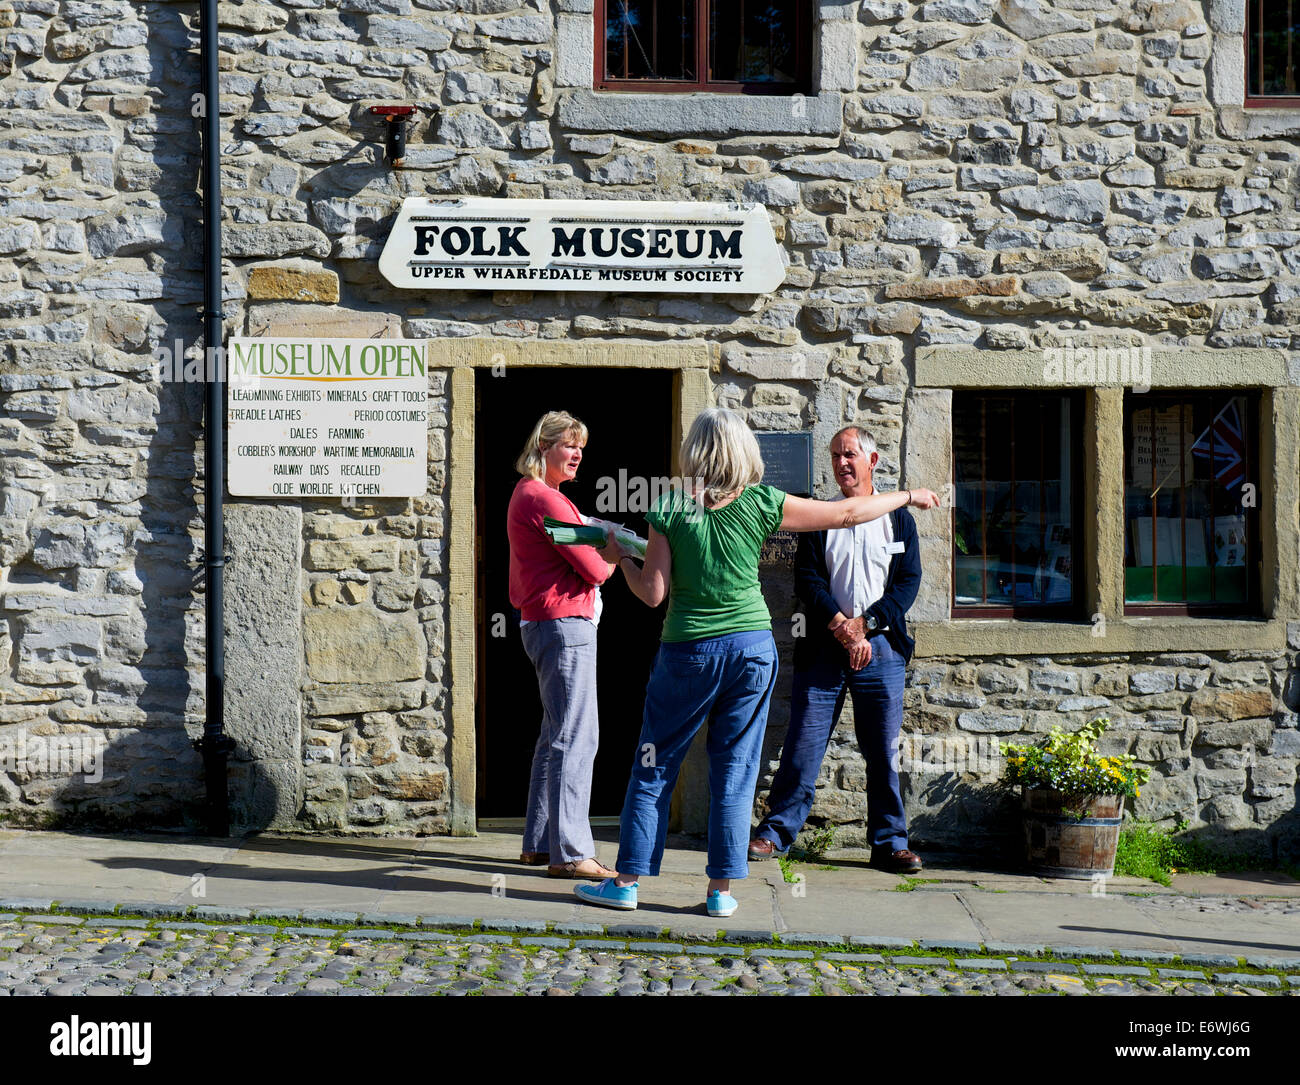 Three people outside the Folk Museum, Grassington, Wharfedale, Yorkshire Dales National Park, North Yorkshire, England - Stock Image